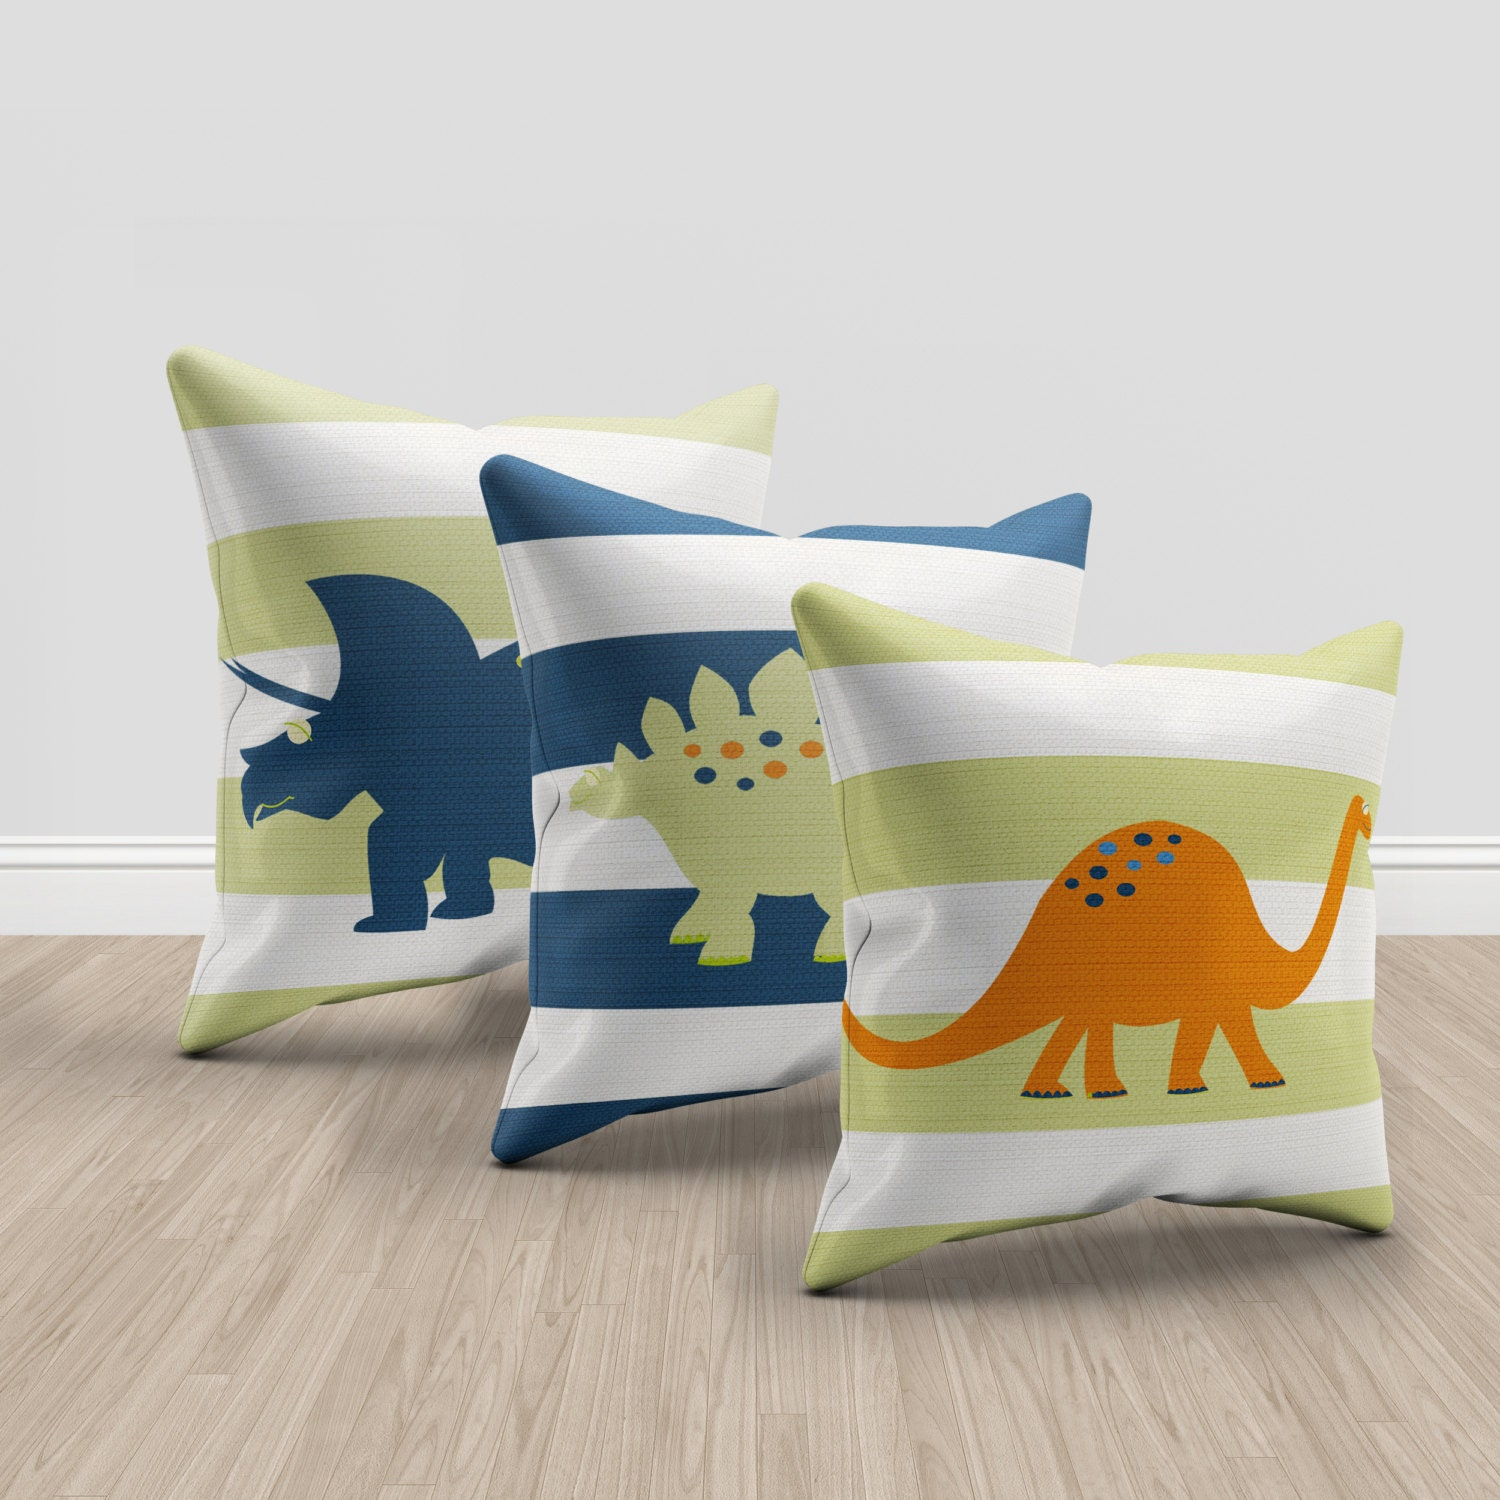 Etsy Throw Pillow Sets : dinosaur throw pillows green orange and blue throw pillows